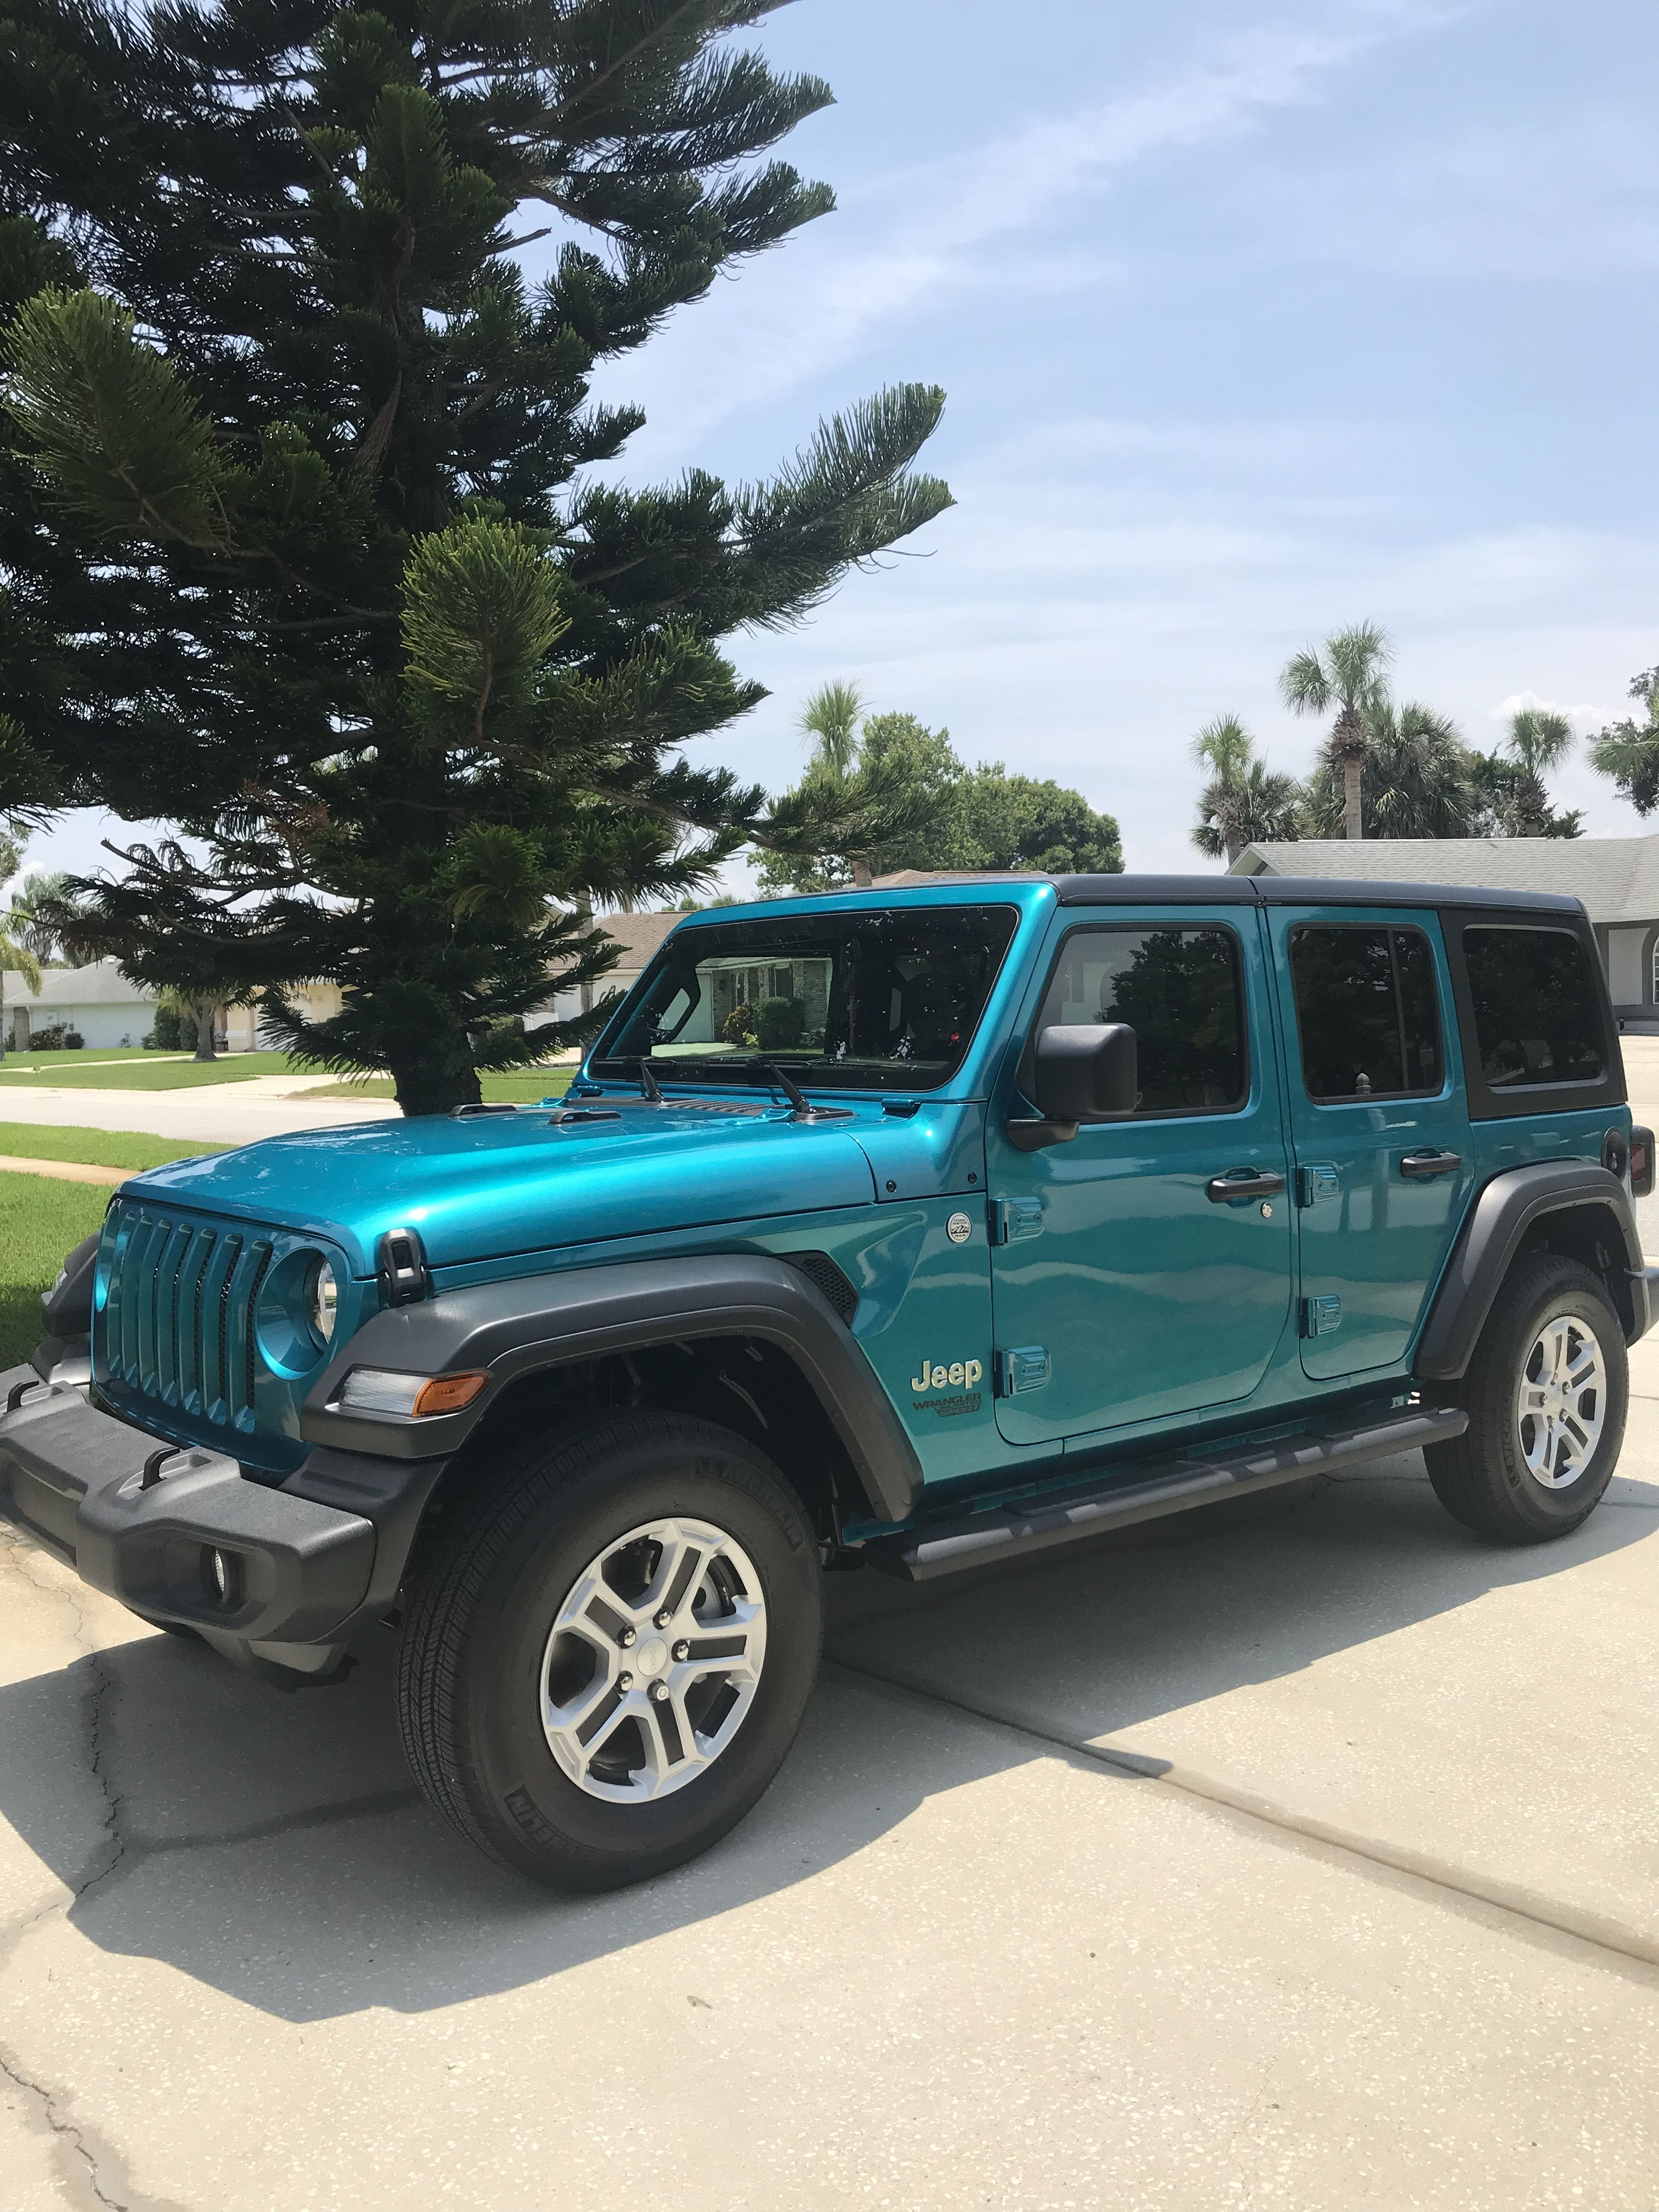 View This New 2019 Jeep Wrangler For Sale Or Lease At Fred